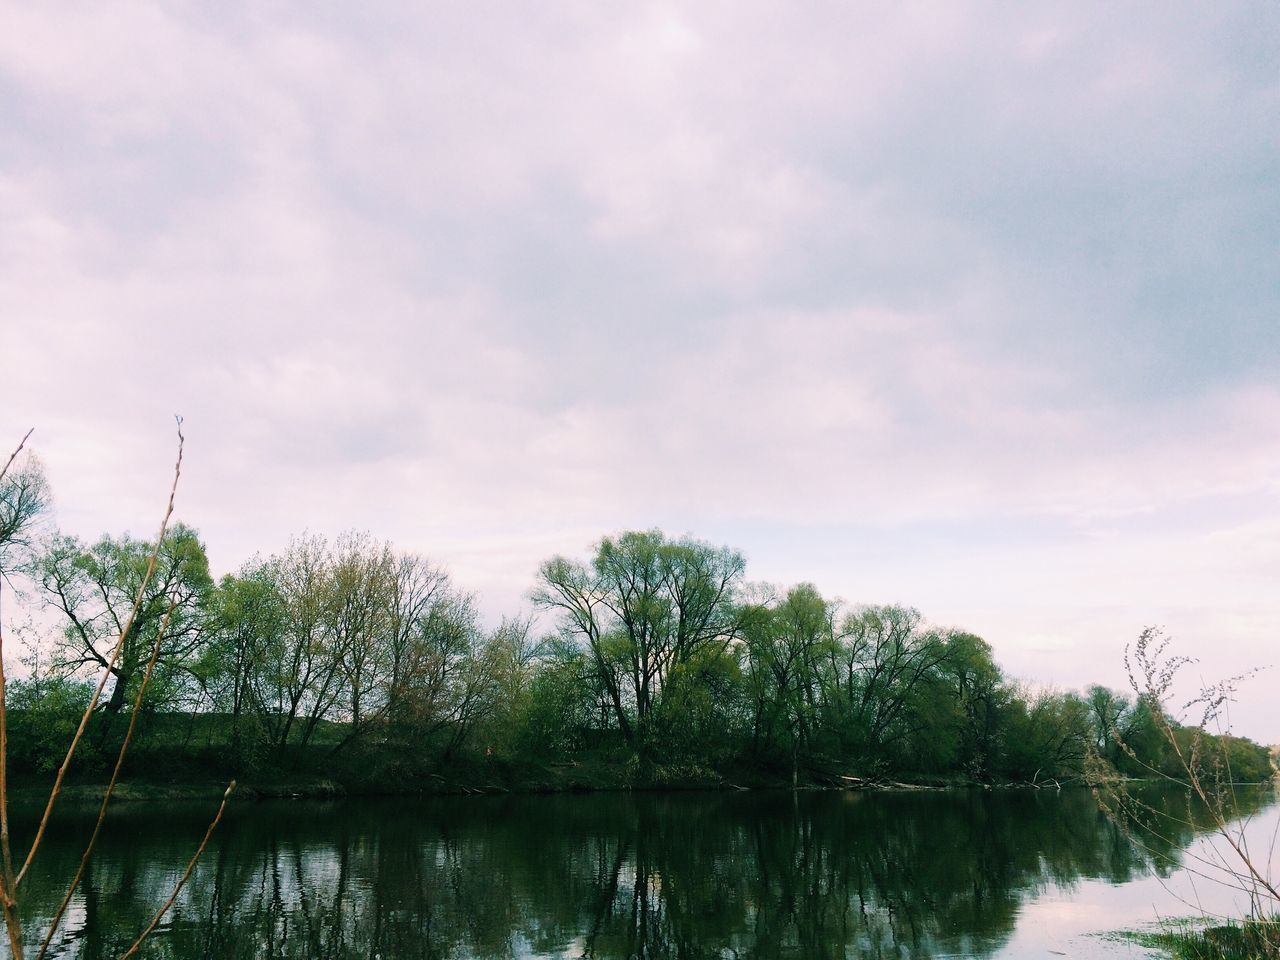 Water Lake Beauty In Nature Day Calm Cloud - Sky Image Green